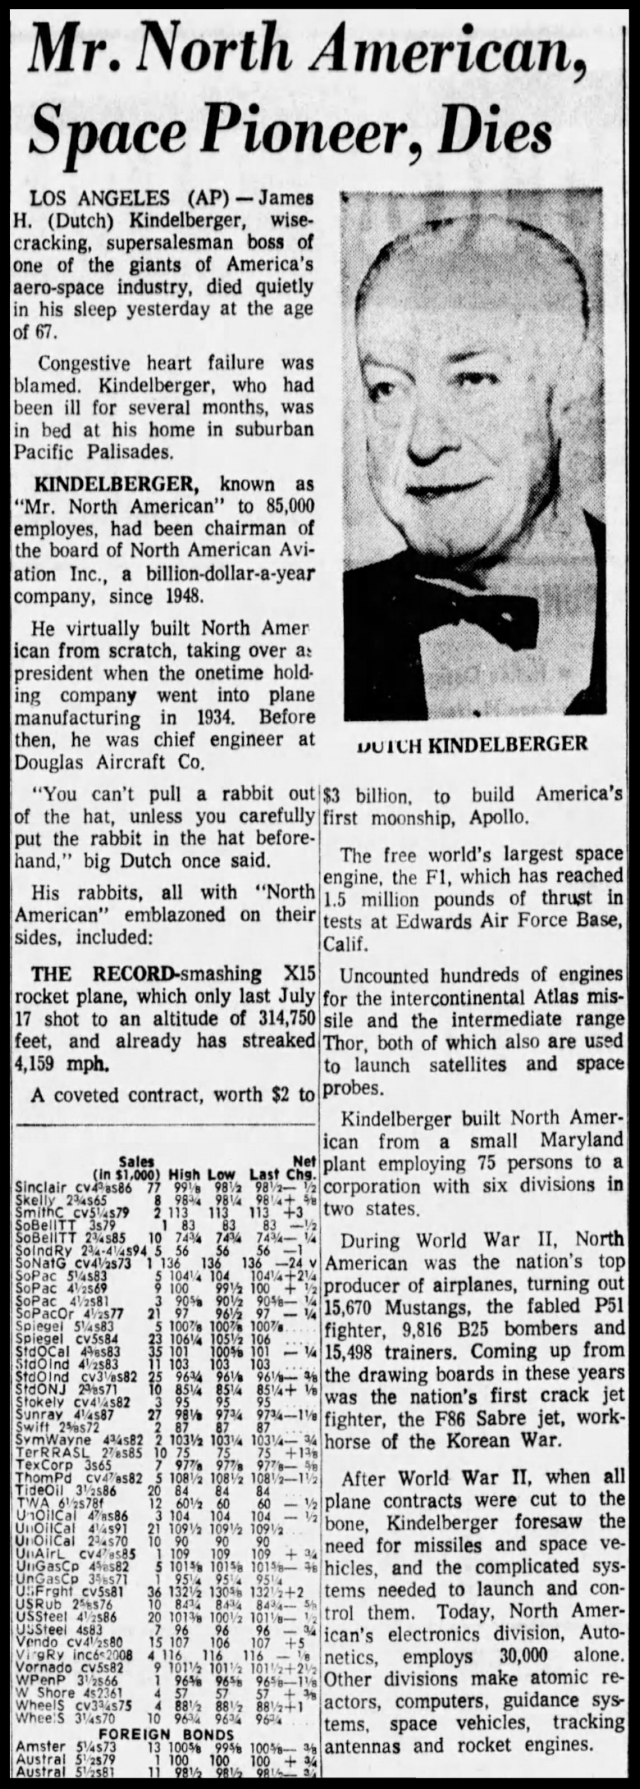 """ Mr. North American Dies."" Arizona Republic, Sat., July 28, 1962."